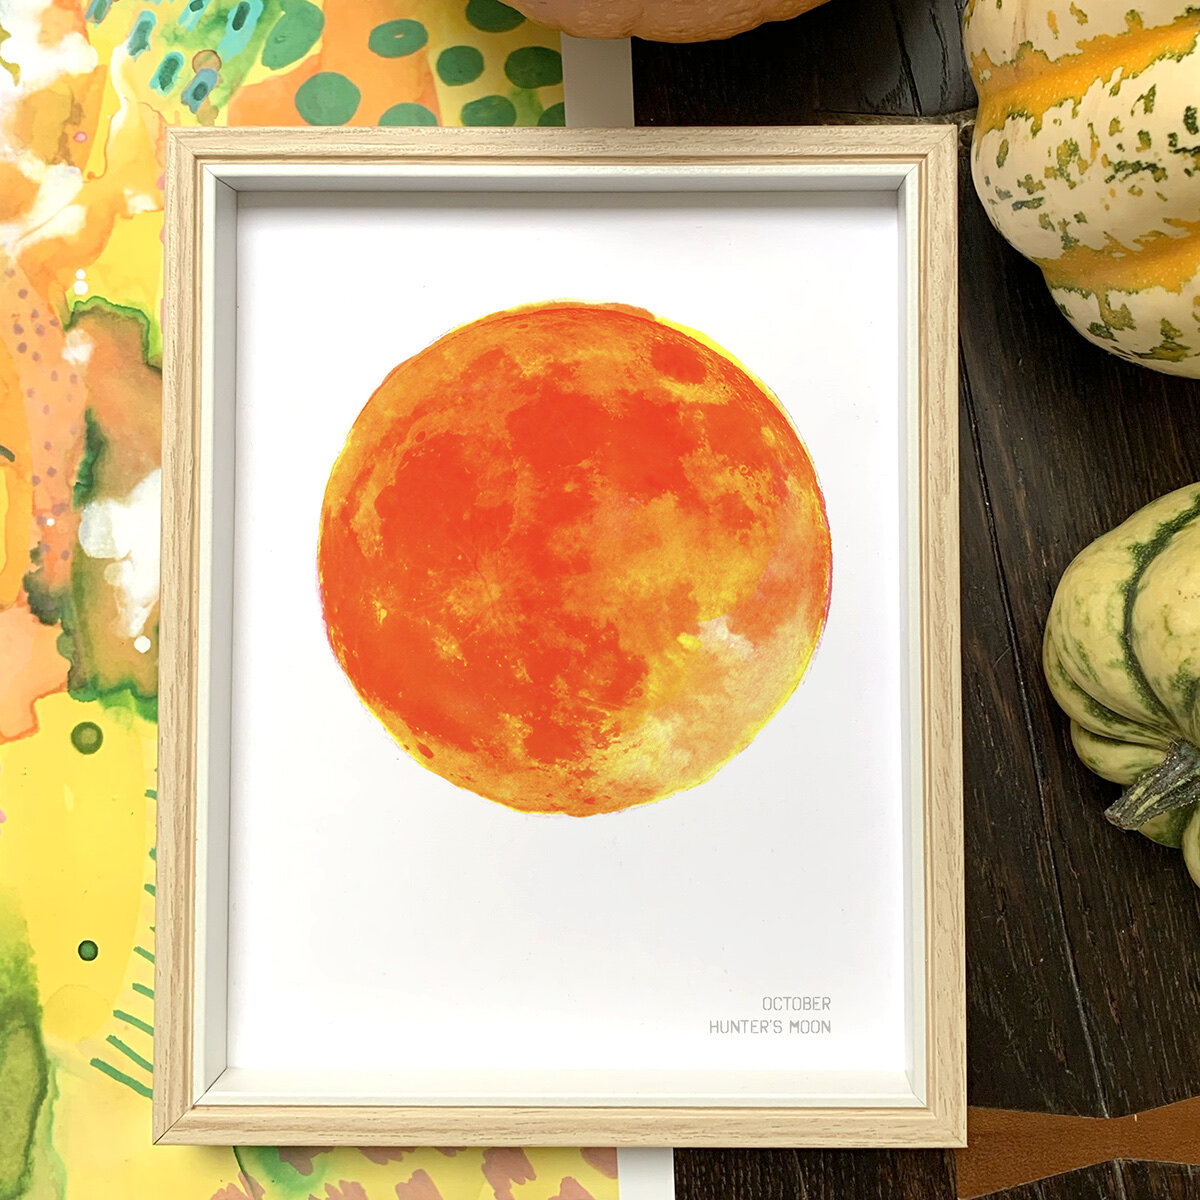 October Hunter's Moon Art Print by Drawn Together Art Collective